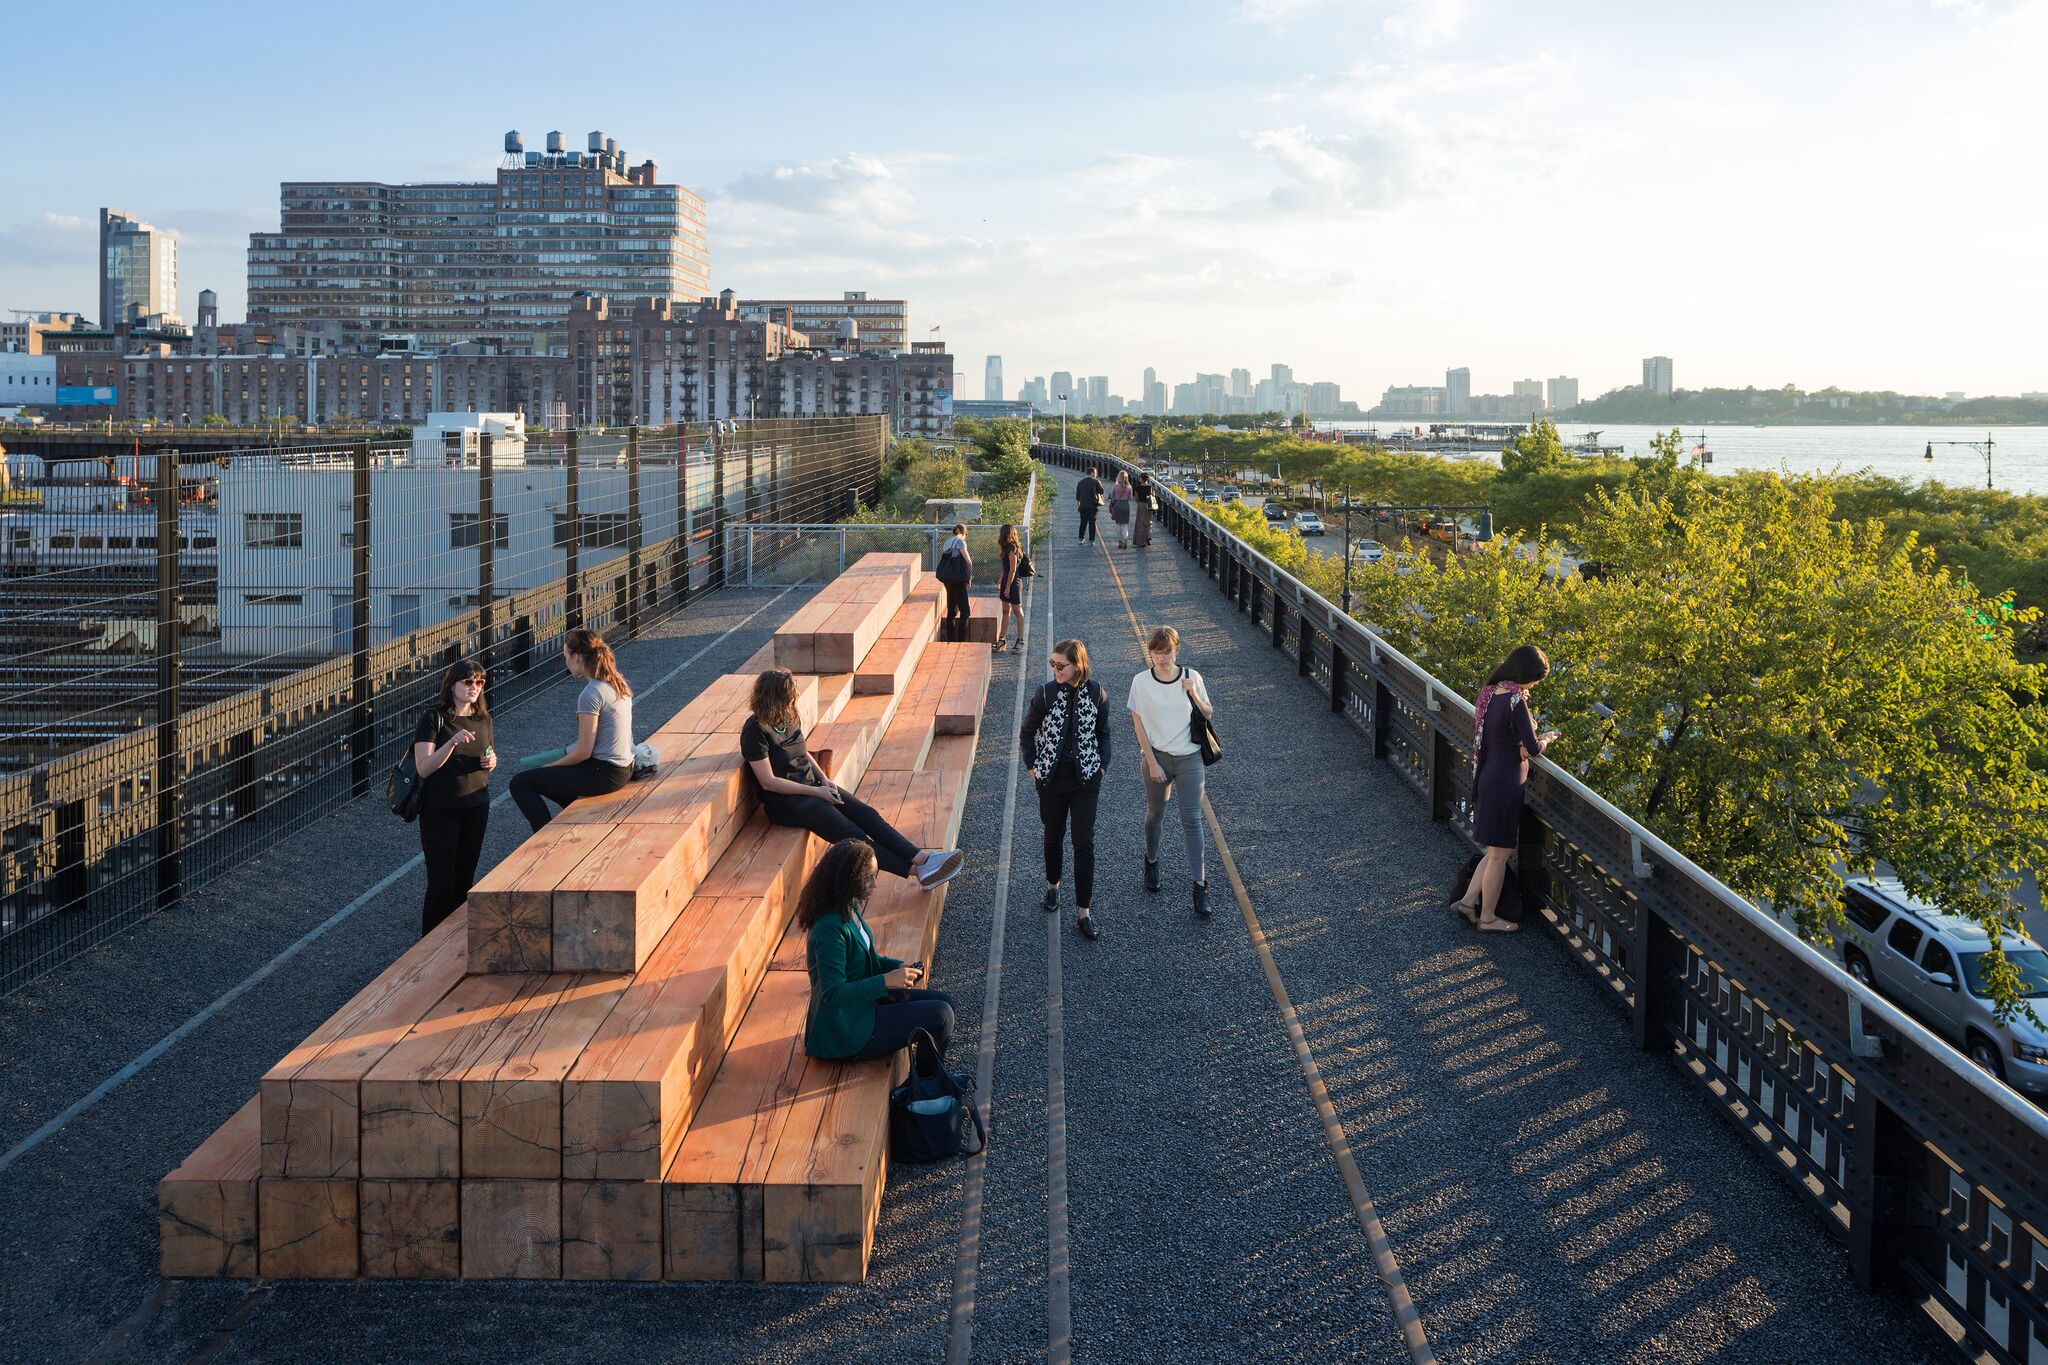 KK&P Seeking Food and Coffee Vendors for the High Line